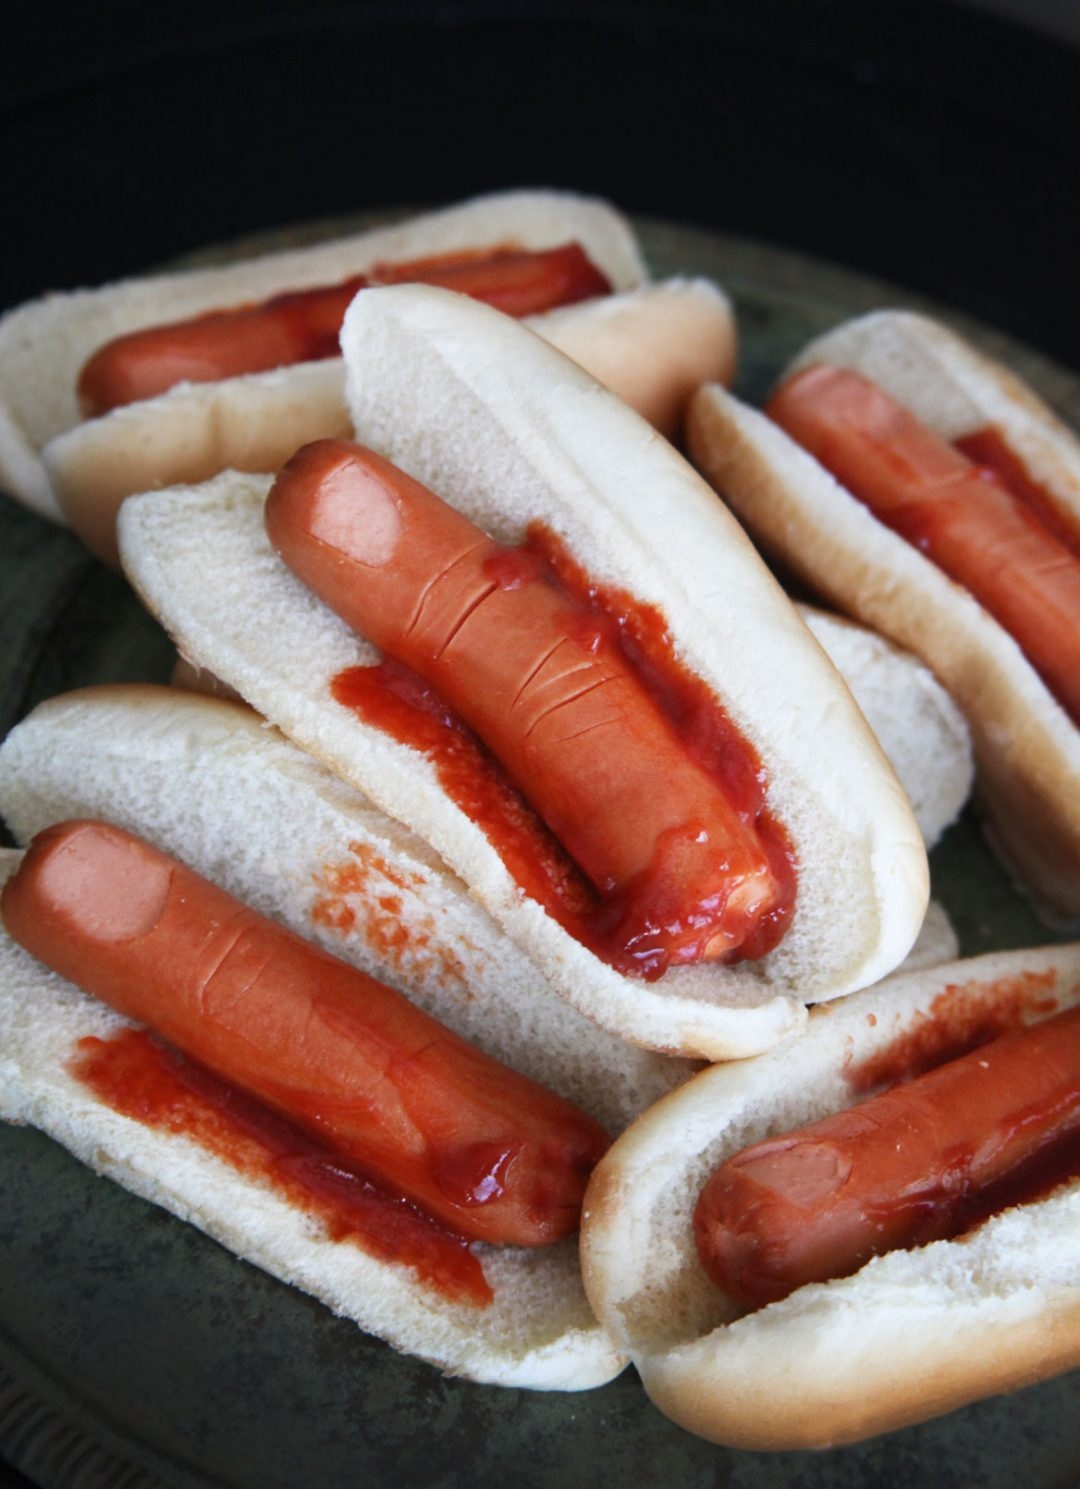 Scary And Fun Halloween Food Ideas For Kids: Severed Fingers In A Bun